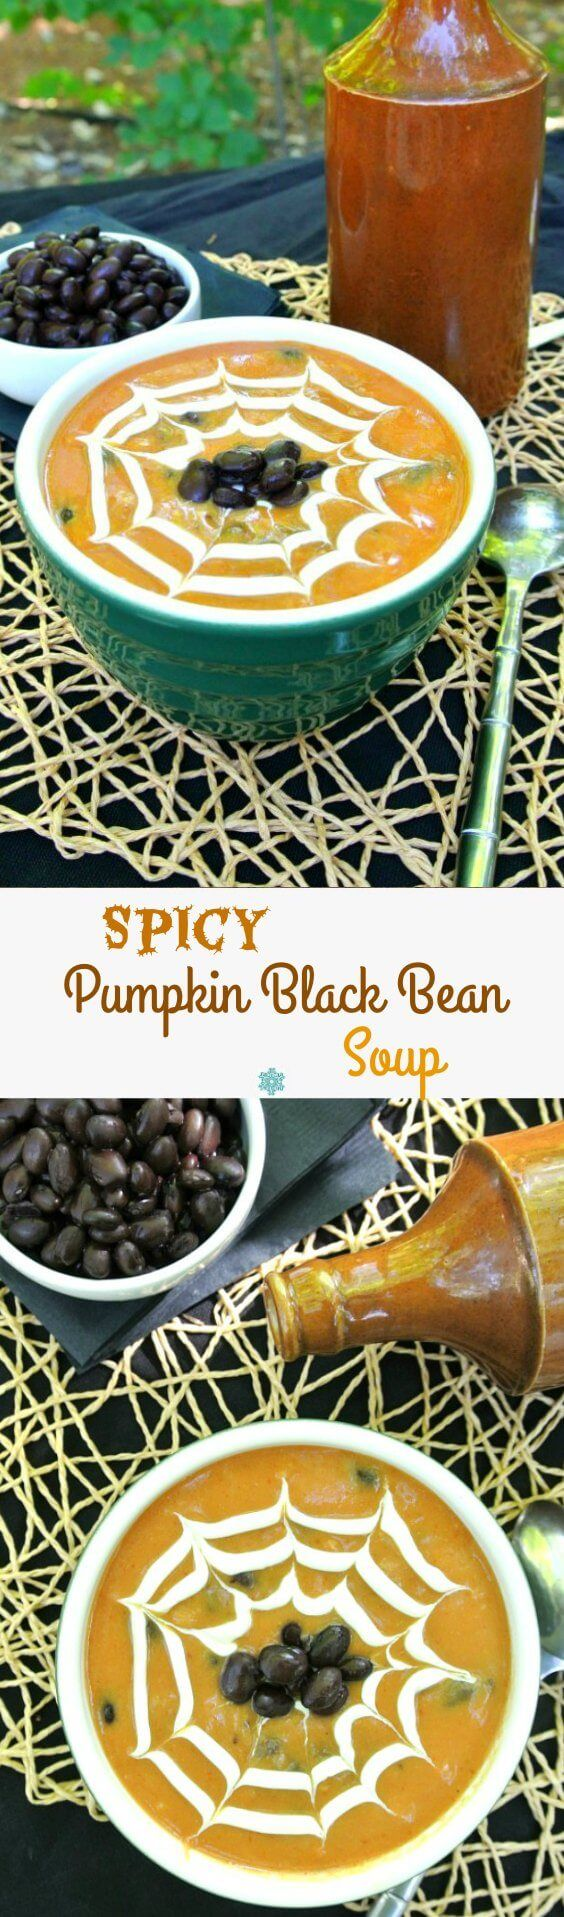 Spicy Pumpkin Black Bean Soup takes a seasonal soup over the top. Lots of texture and taste with ingredients layered one after the other for a flavor complexity that you'll want year after year. #DoPlants @LoveMySilk